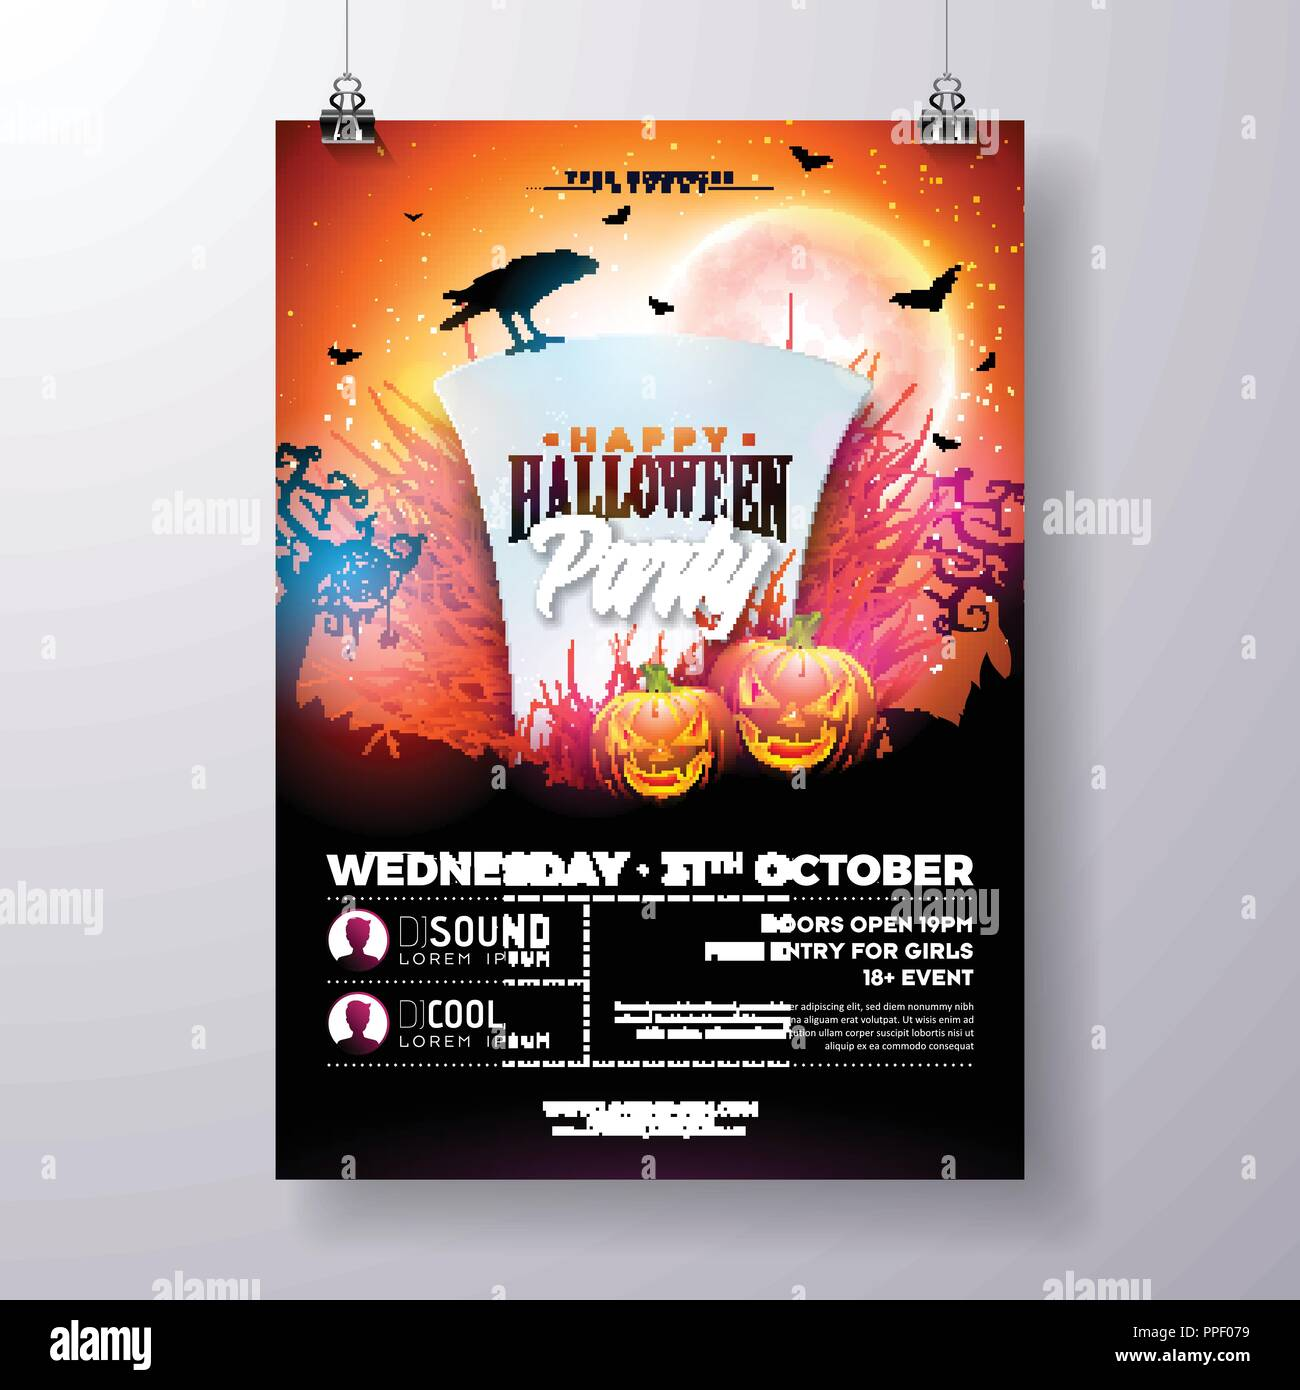 Halloween Party Flyer Vector Illustration With Tombstone And Pumpkins On Mysterious Red Background Holiday Design Template Crow Fliyng Bats For